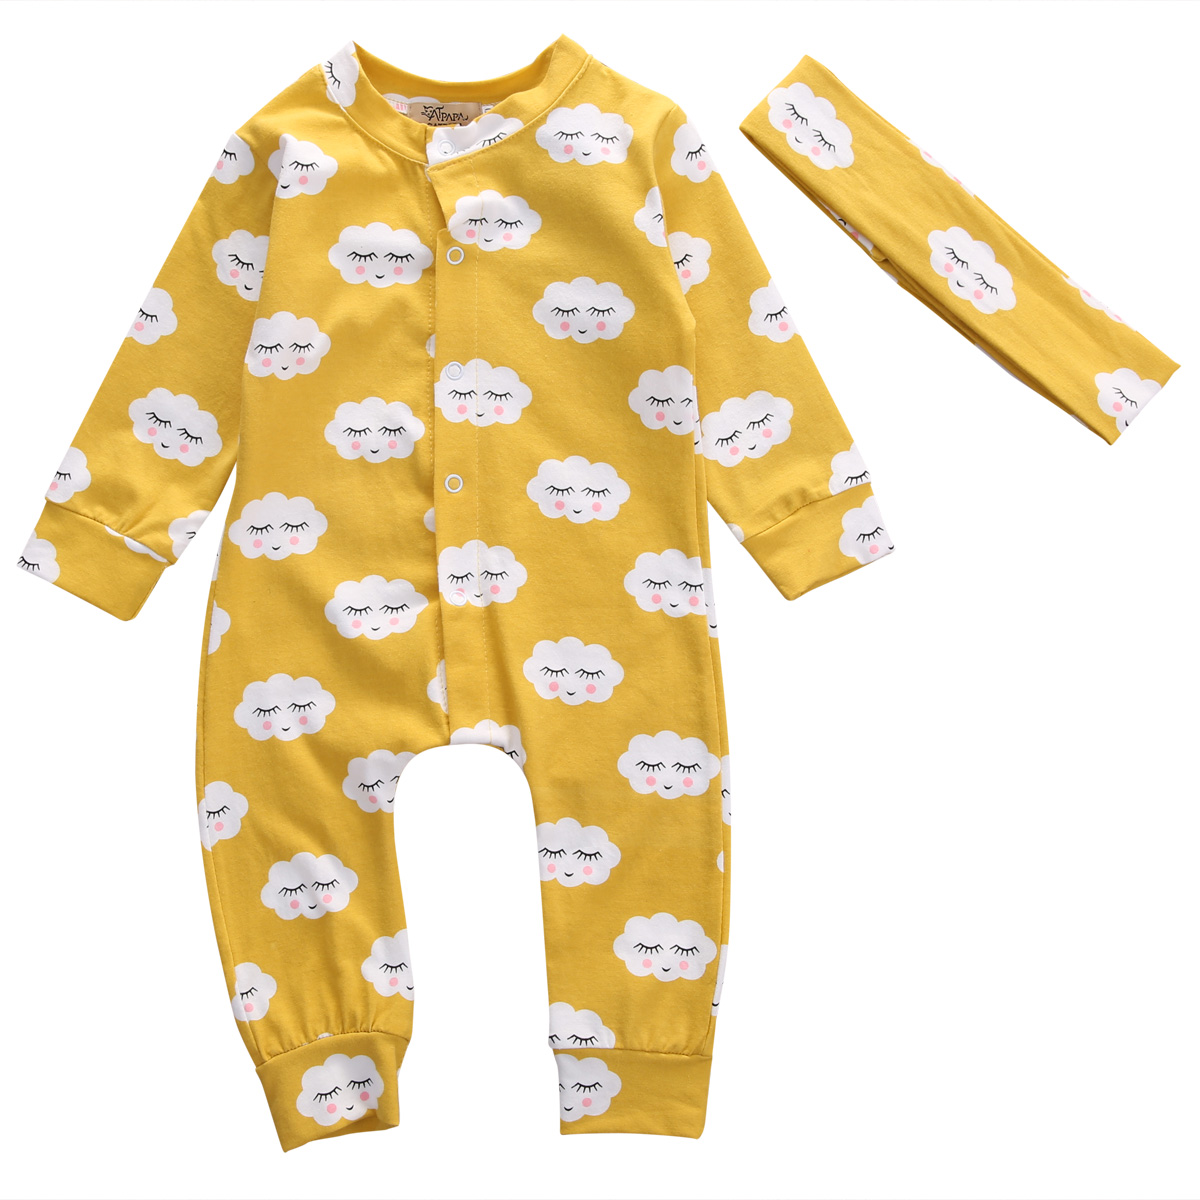 Hot Baby Boy Girl Pants Set Long Sleeve  Newborn Baby Suit Boy cartoon Clothing yellow Sets Gift Suits Kids Clothes Set Infant baby fox print clothes set newborn baby boy girl long sleeve t shirt tops pants 2017 new hot fall bebes outfit kids clothing set